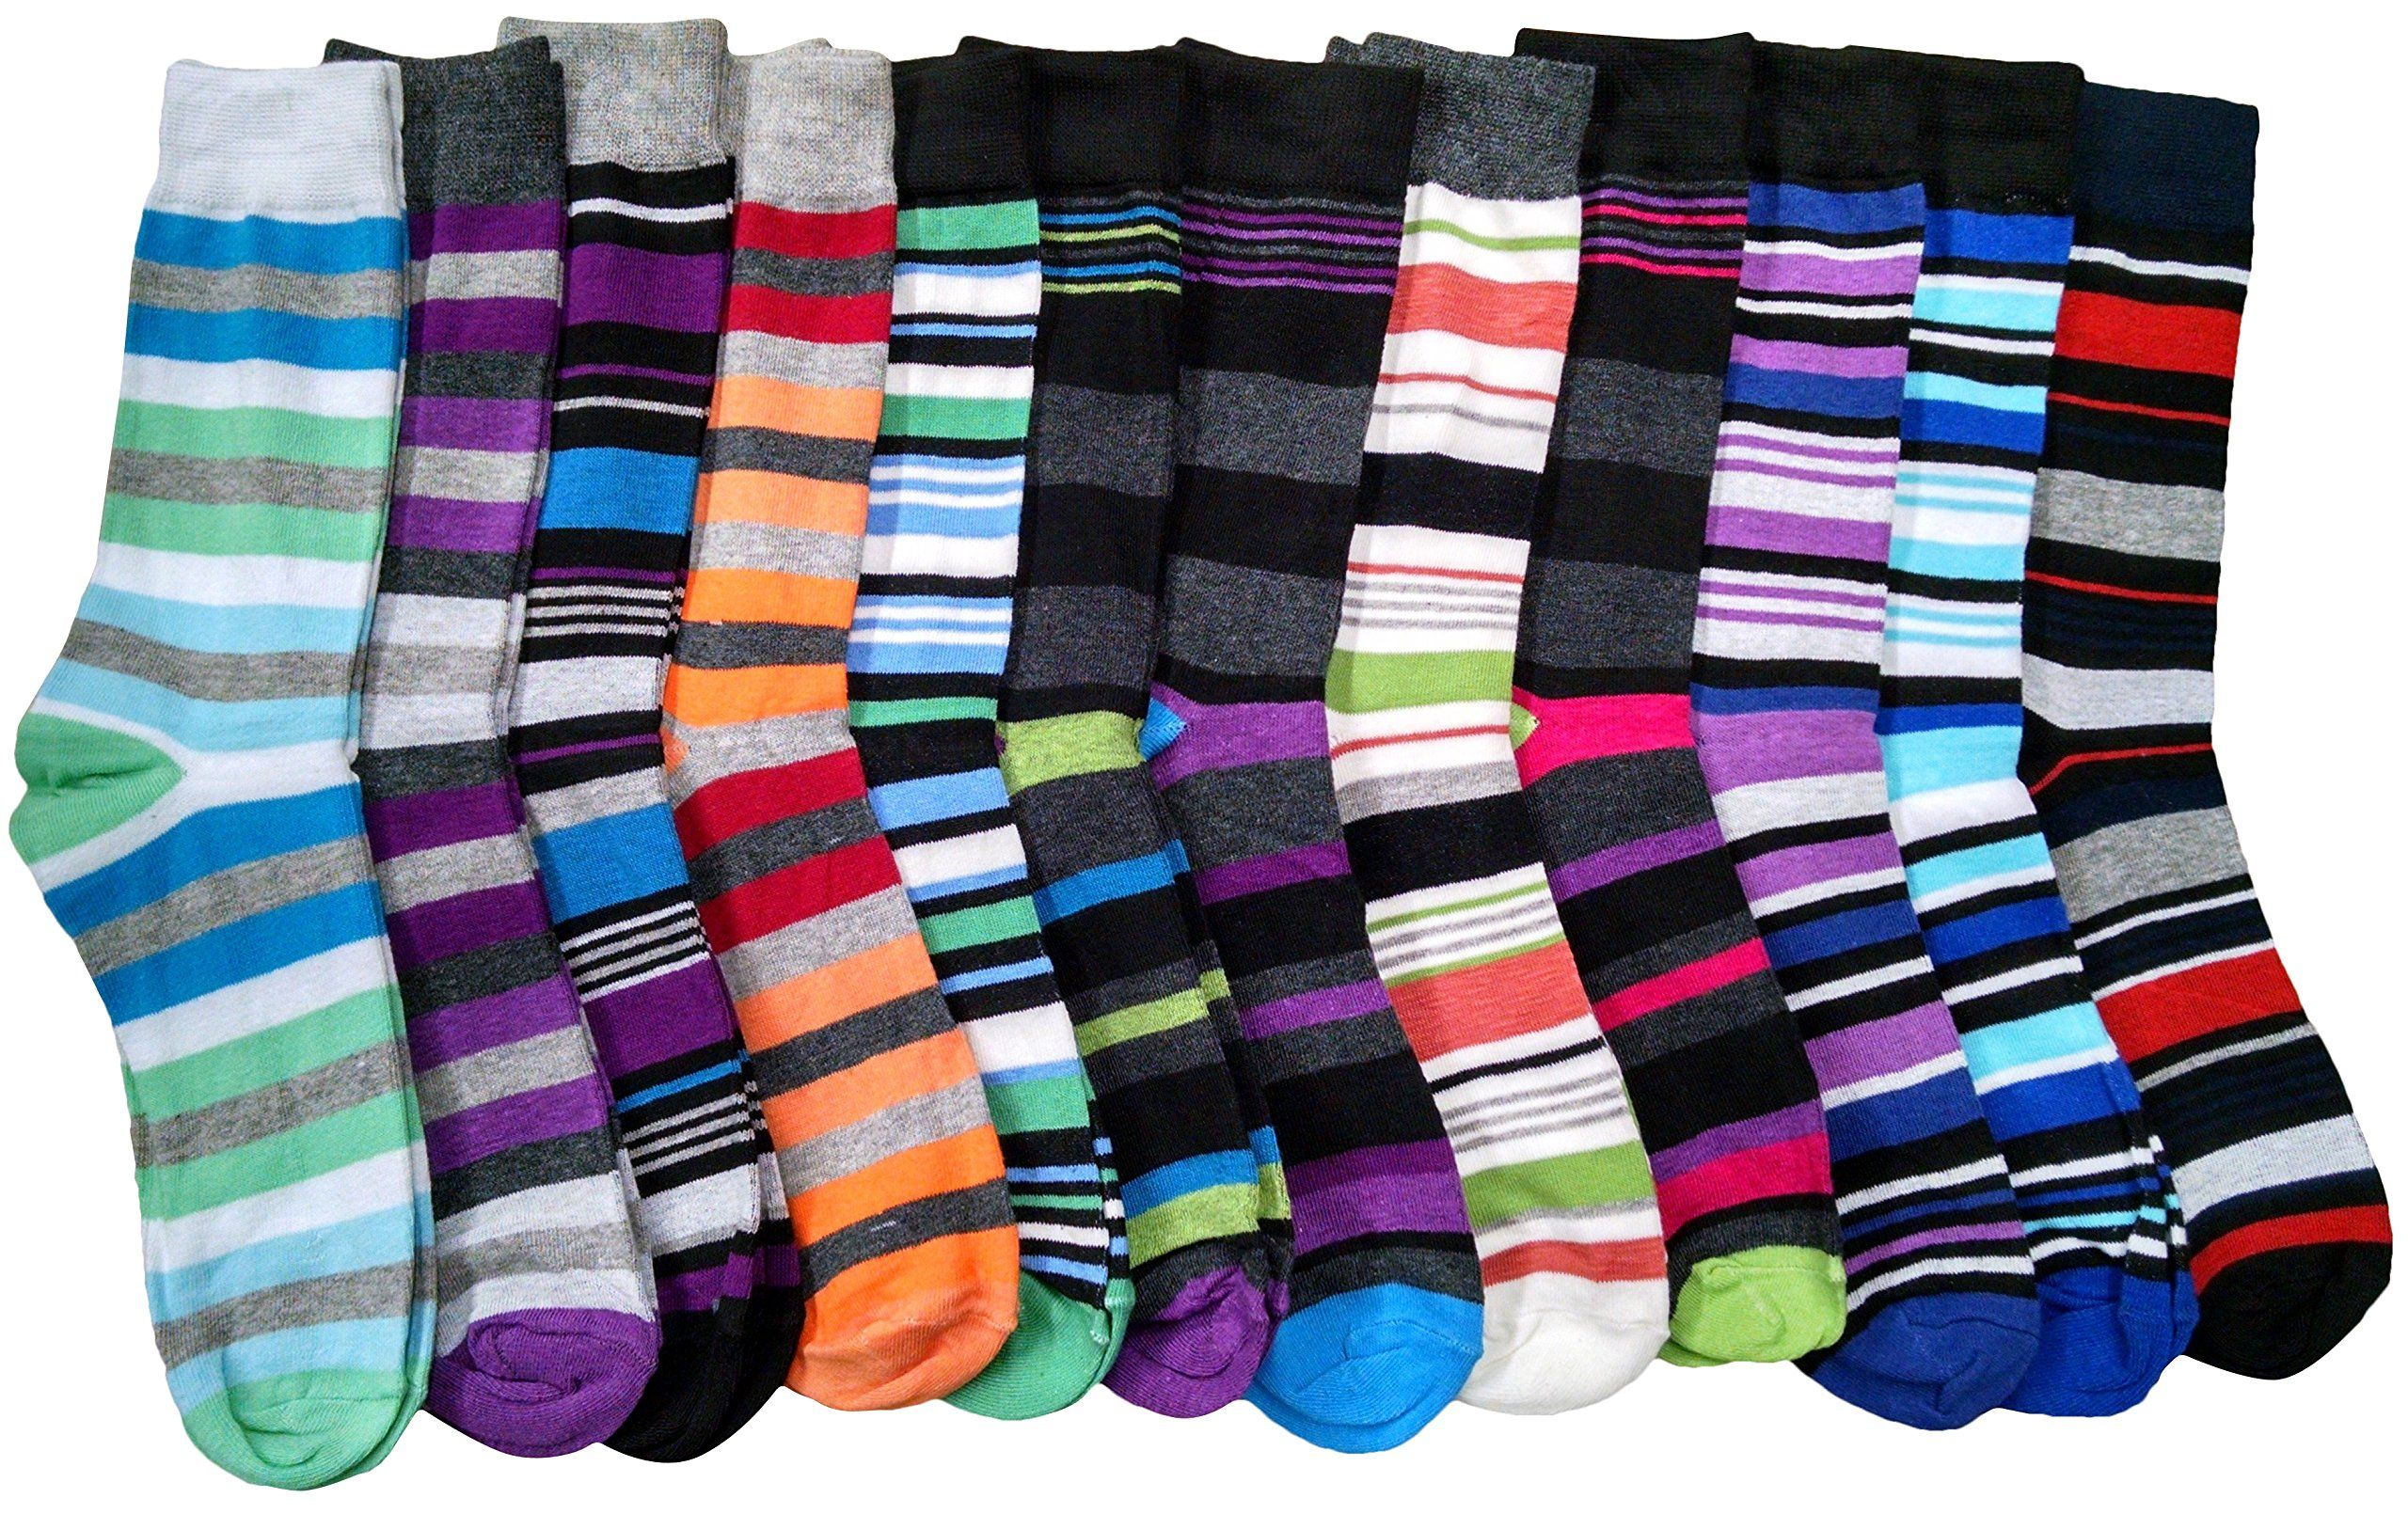 975907f8e7b7 12 Pairs of excell Mens Striped Colorful Dress Socks, Cotton Blend, Sock  Size 10-13 at Amazon Men's Clothing store: